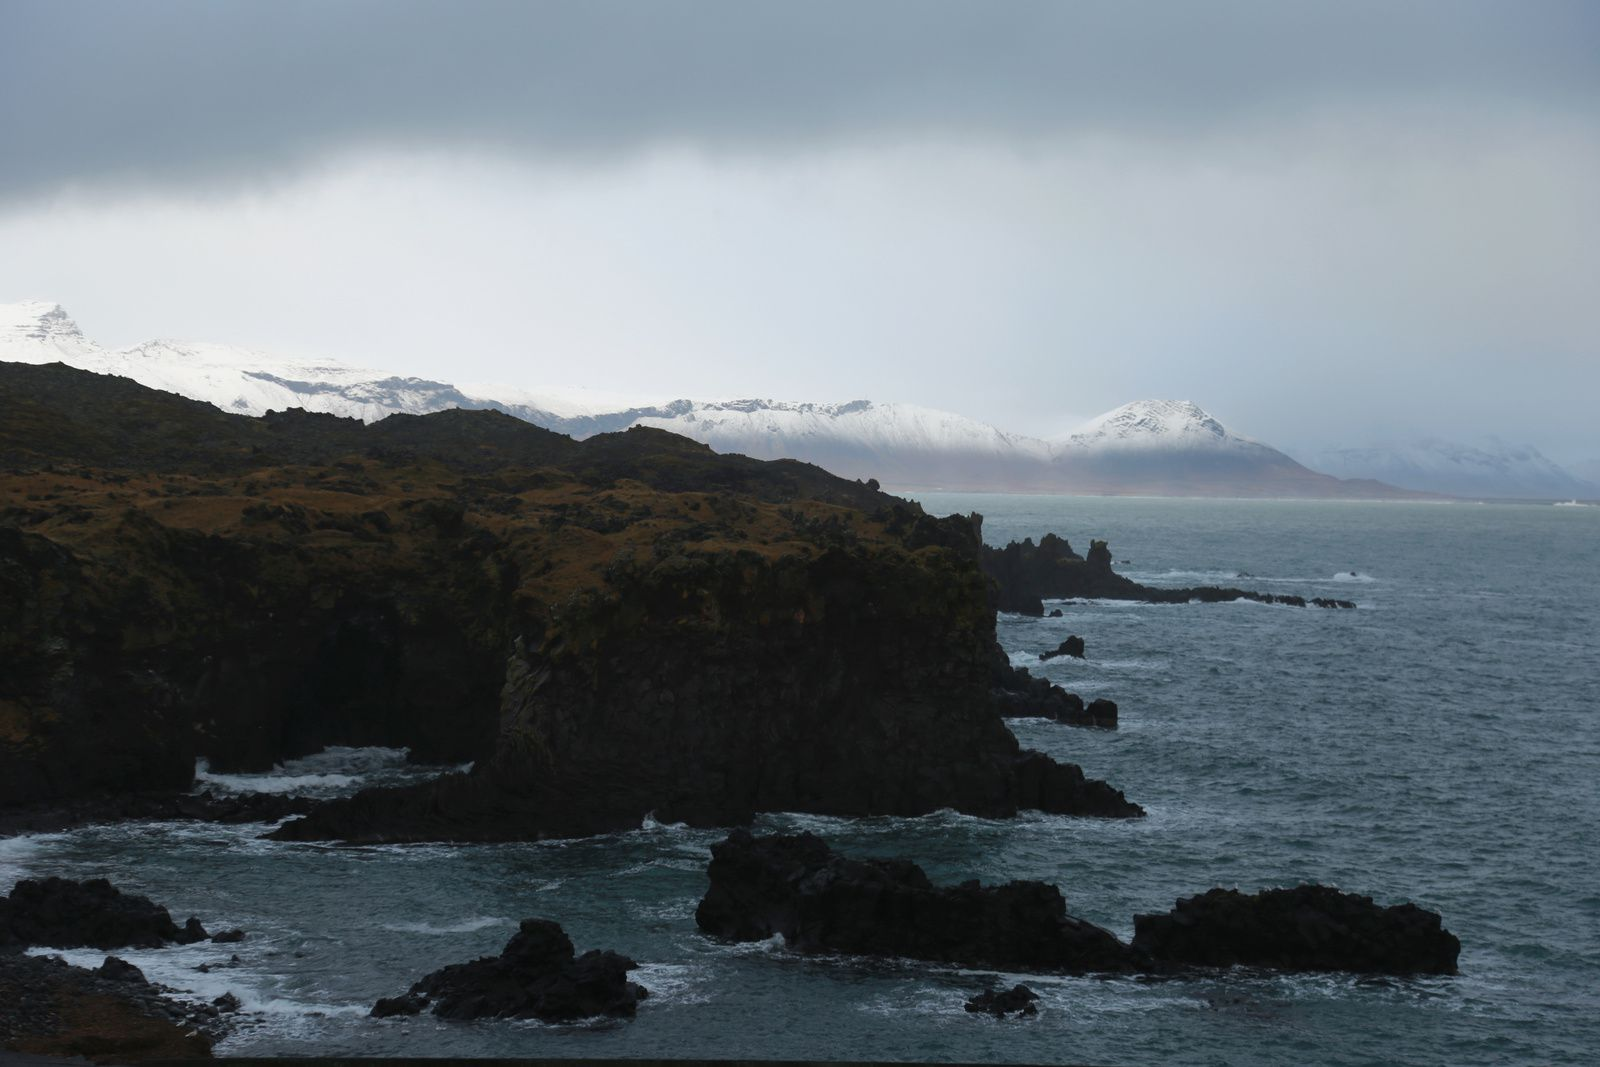 A lava flow of the Snaefellsjökull plunges into the sea near the port of Arnarstapi - in the background, the Snaefellsjökull - photos © Bernard Duyck 10.2016